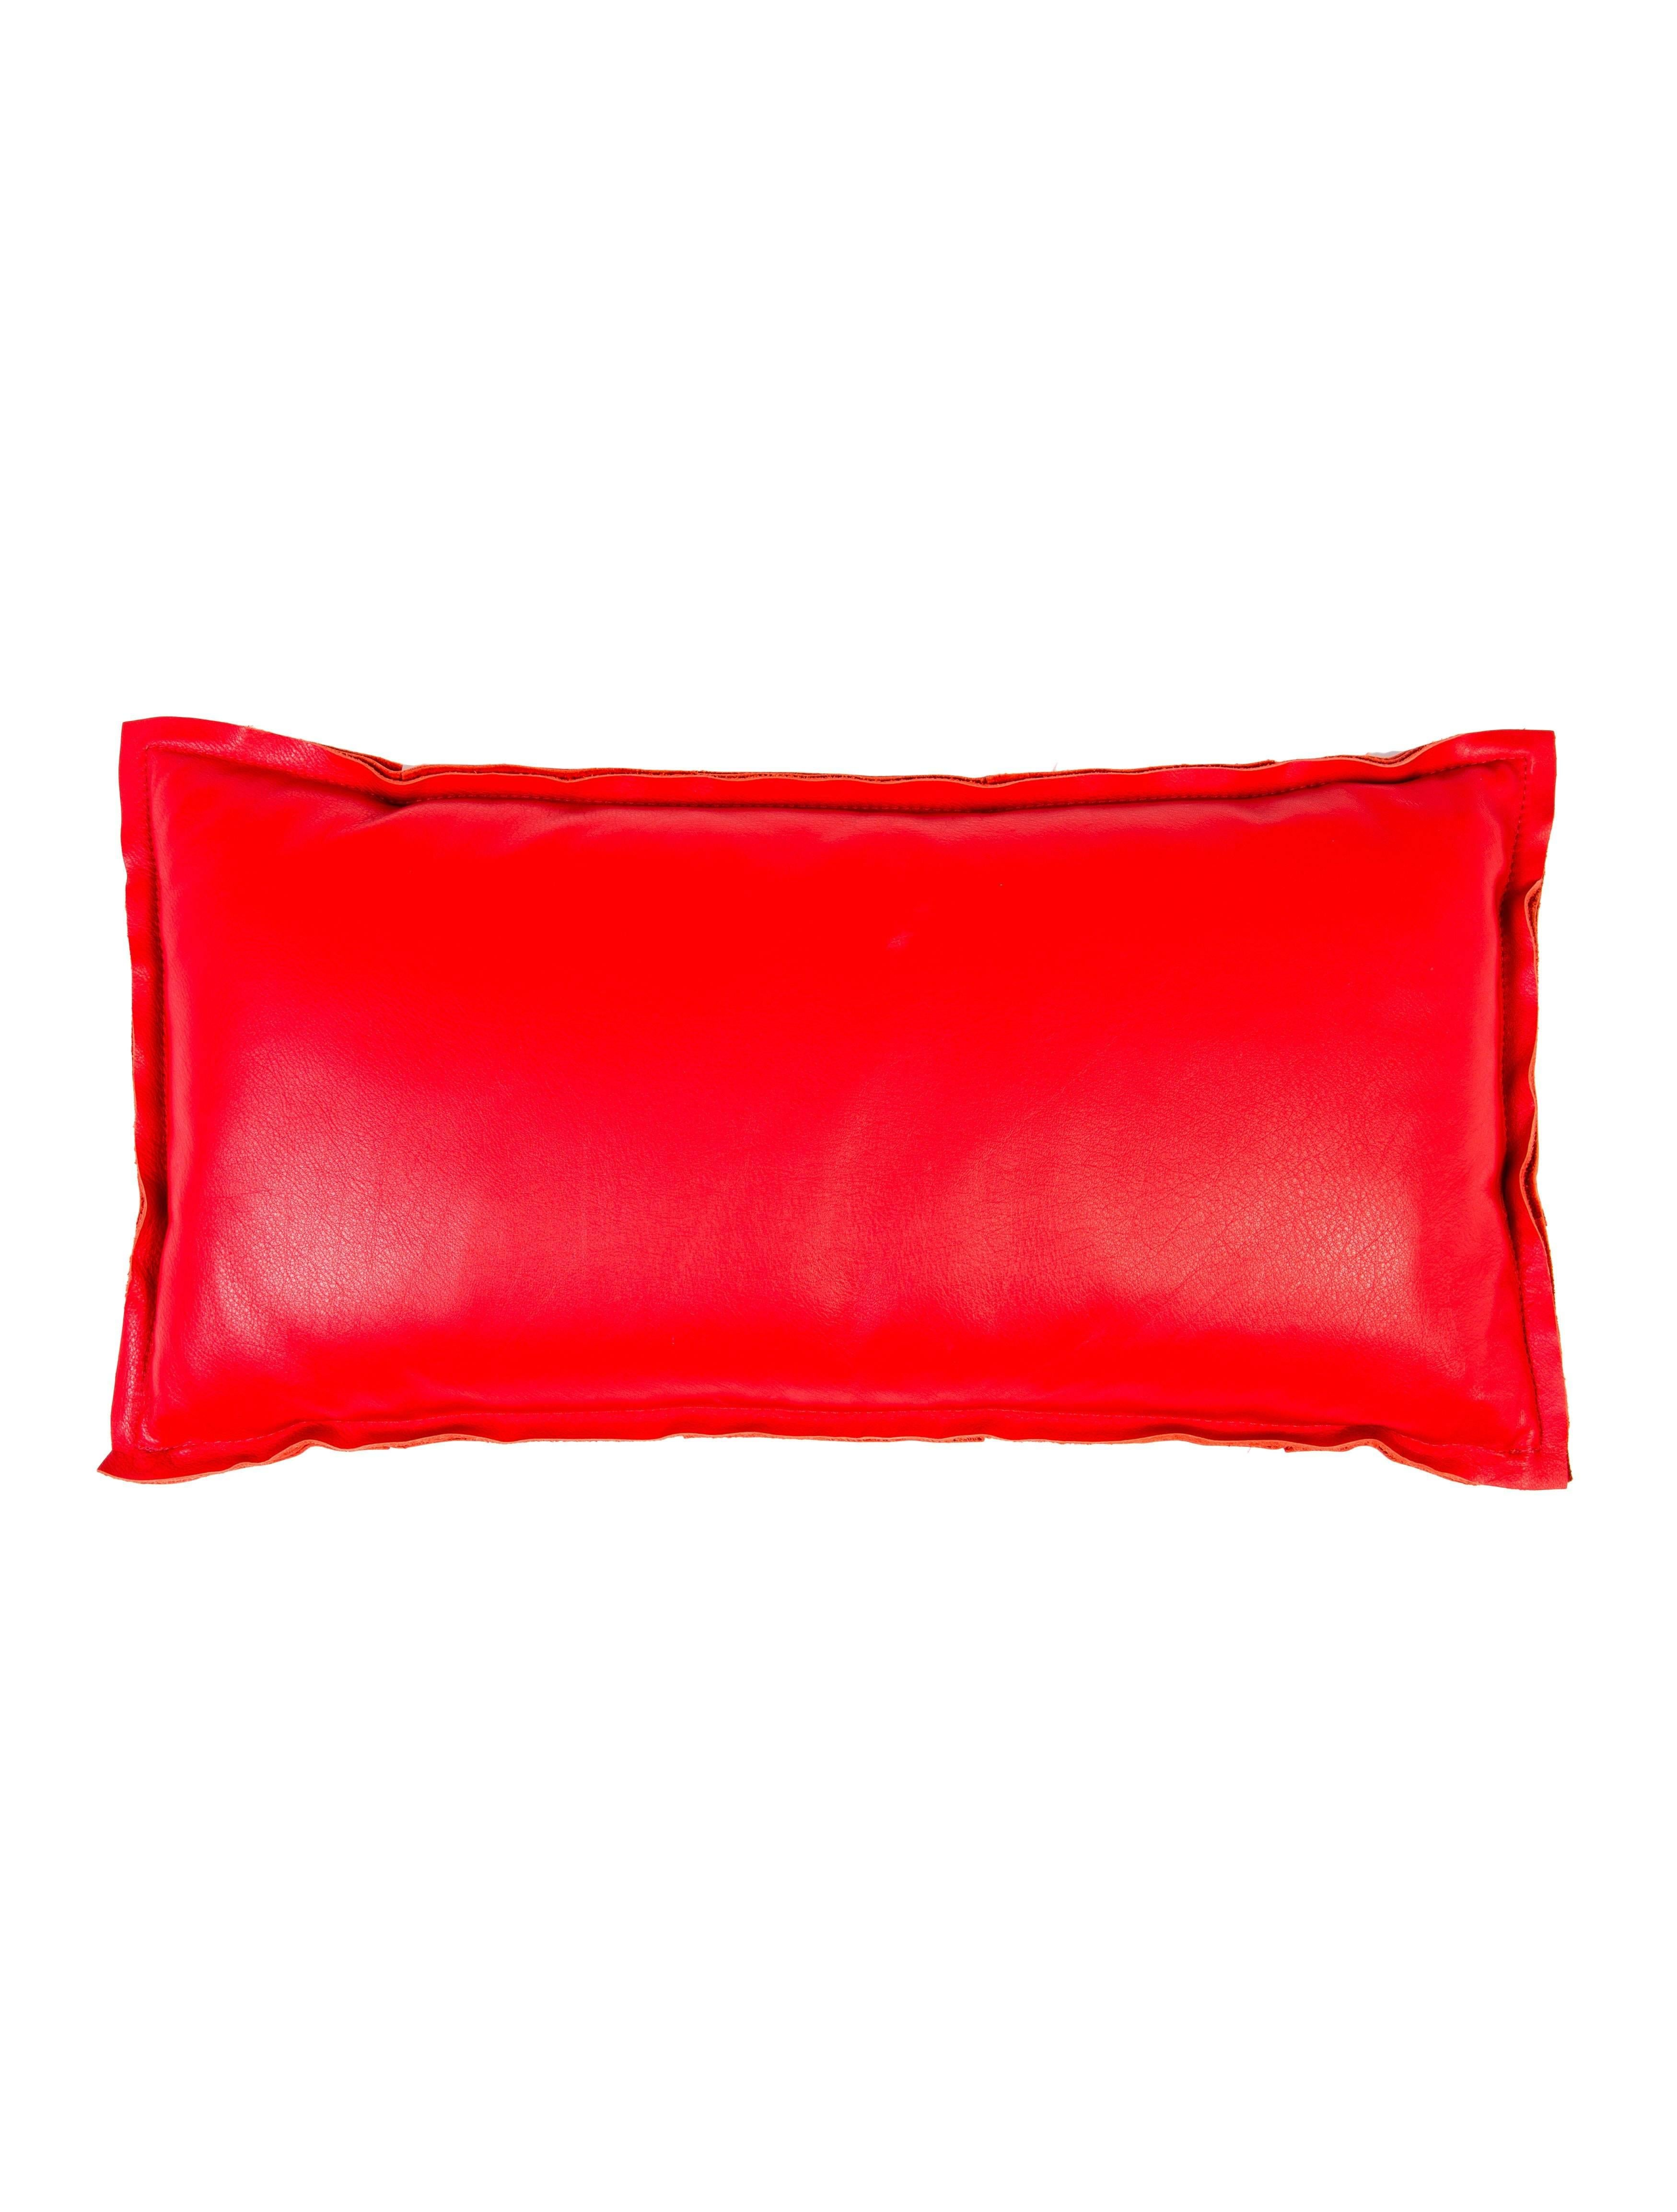 Fendi Red Leather Logo Home Decorative Couch Chair Throw Pillow lKgNJX7NJF